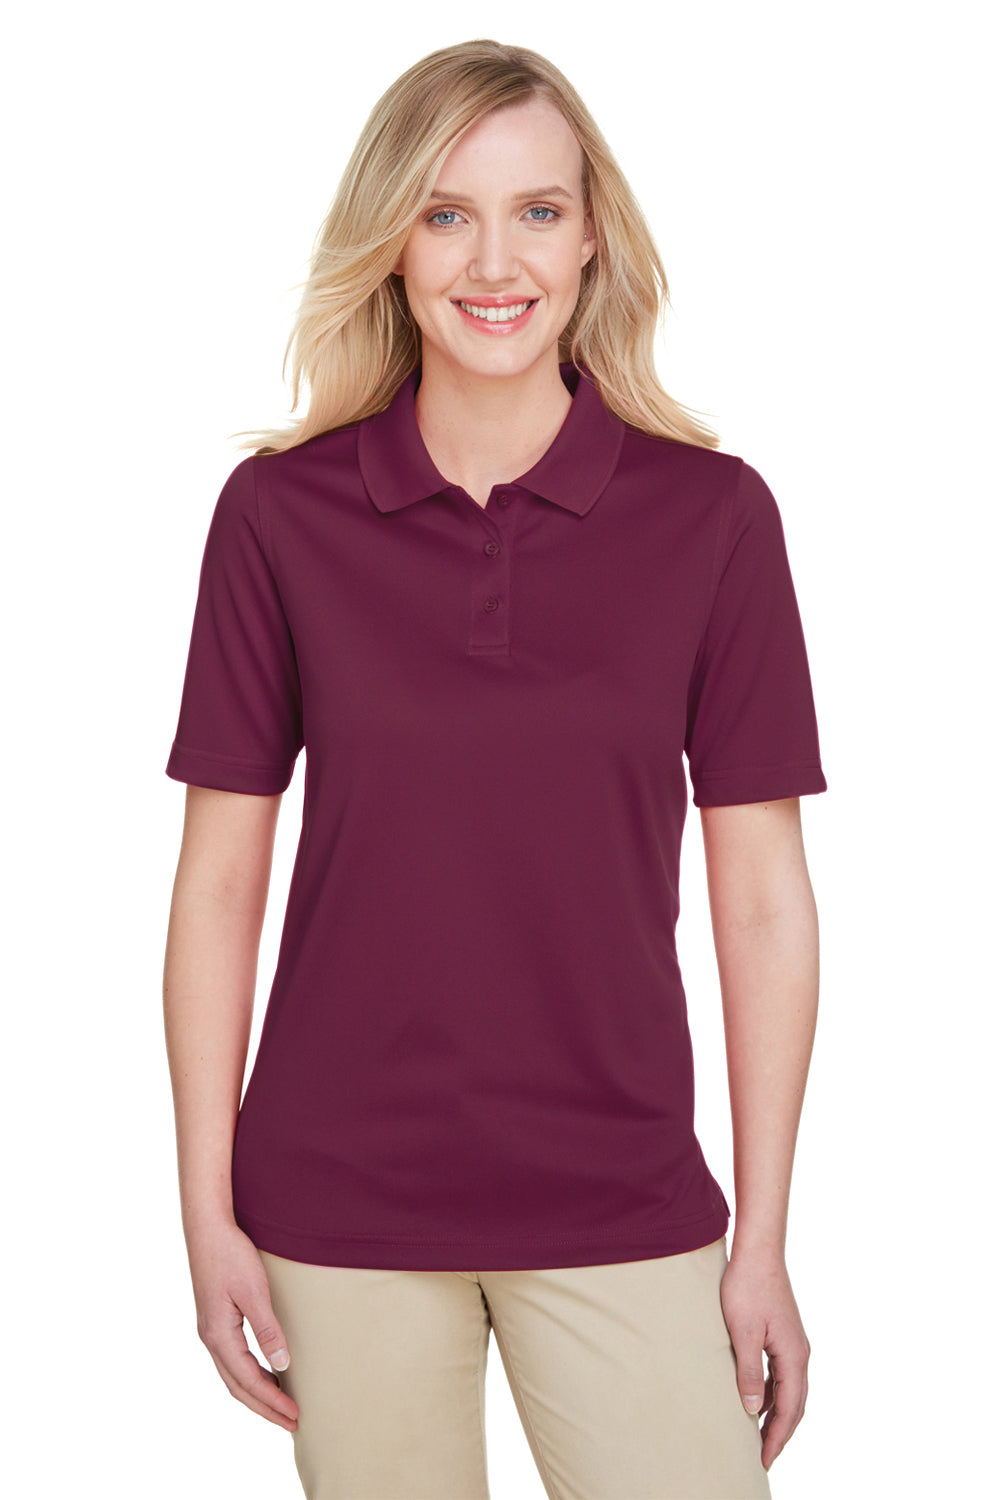 Harriton M348W Womens Advantage Performance Moisture Wicking Short Sleeve Polo Shirt Maroon Front